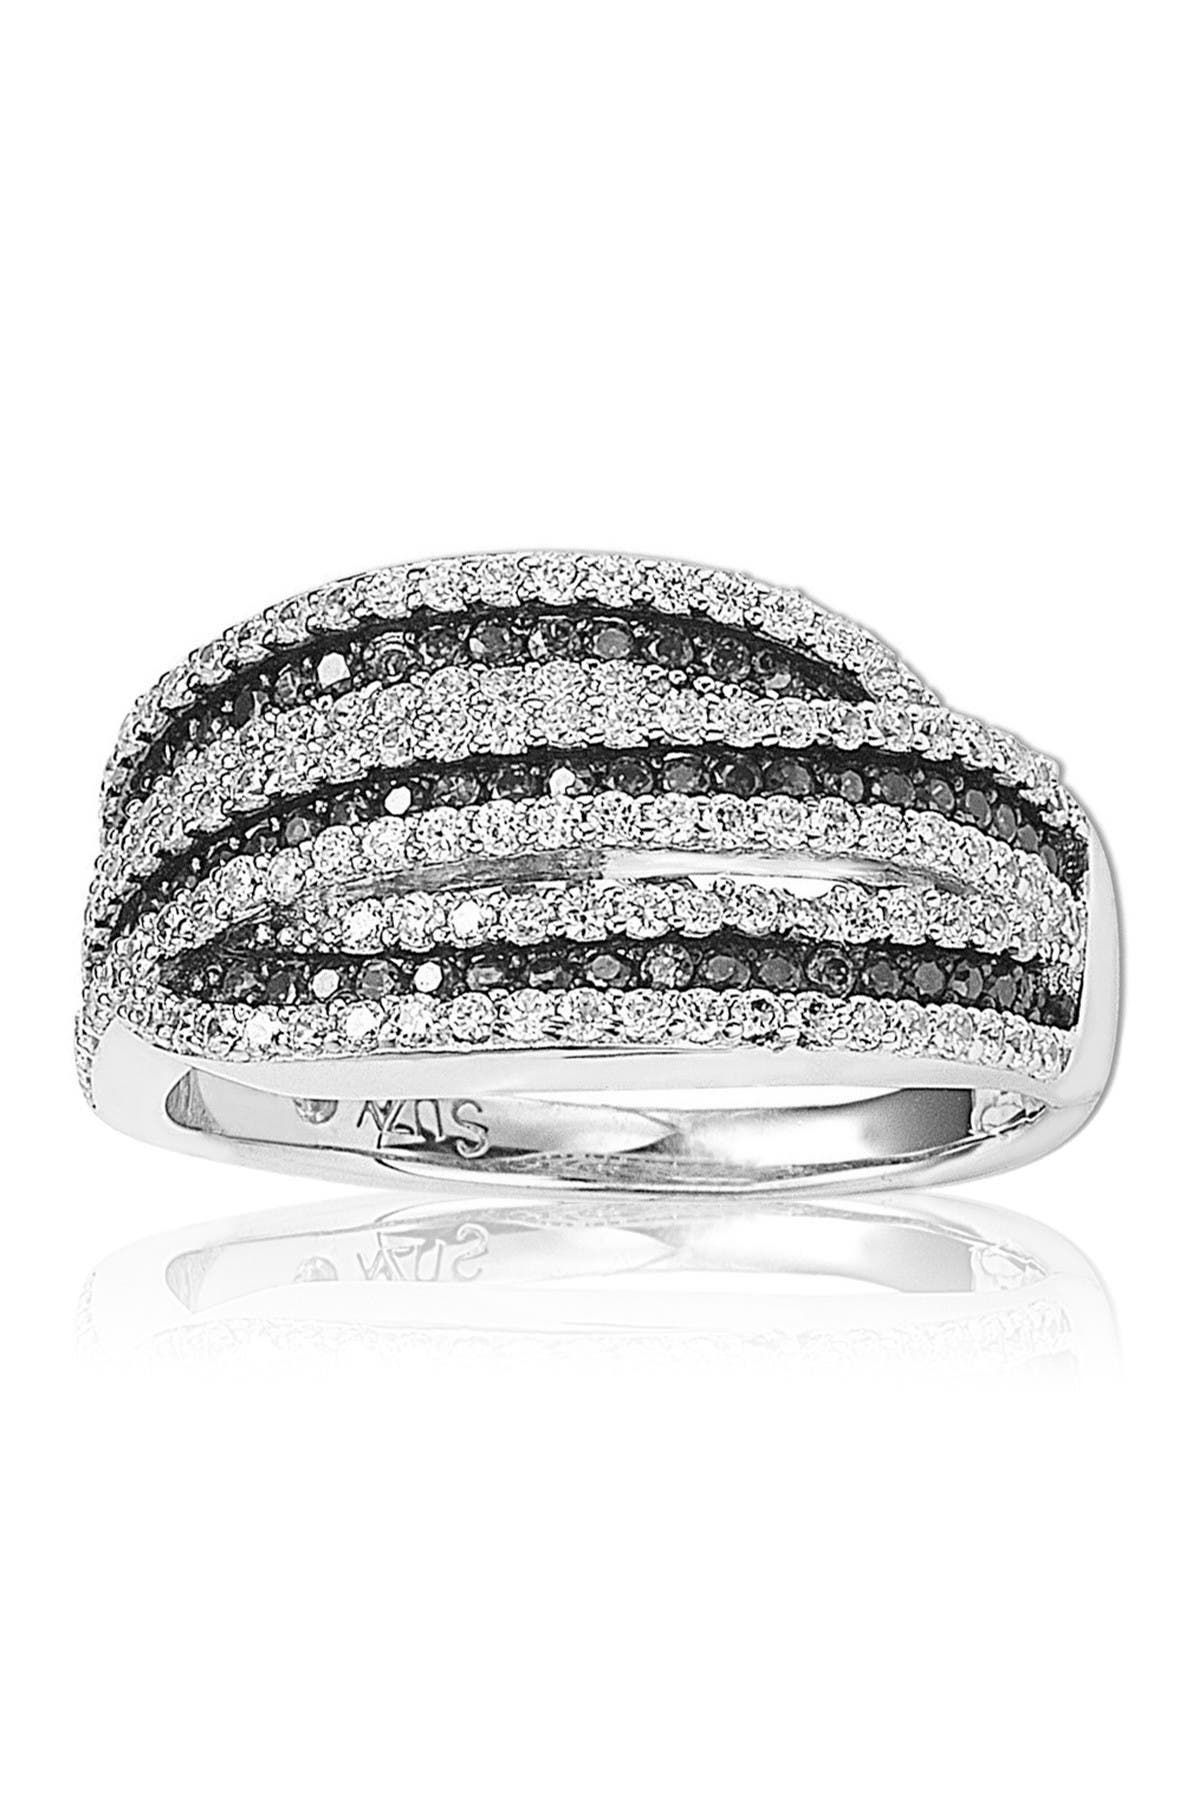 Image of Suzy Levian Sterling Silver Pave Set CZ Ring